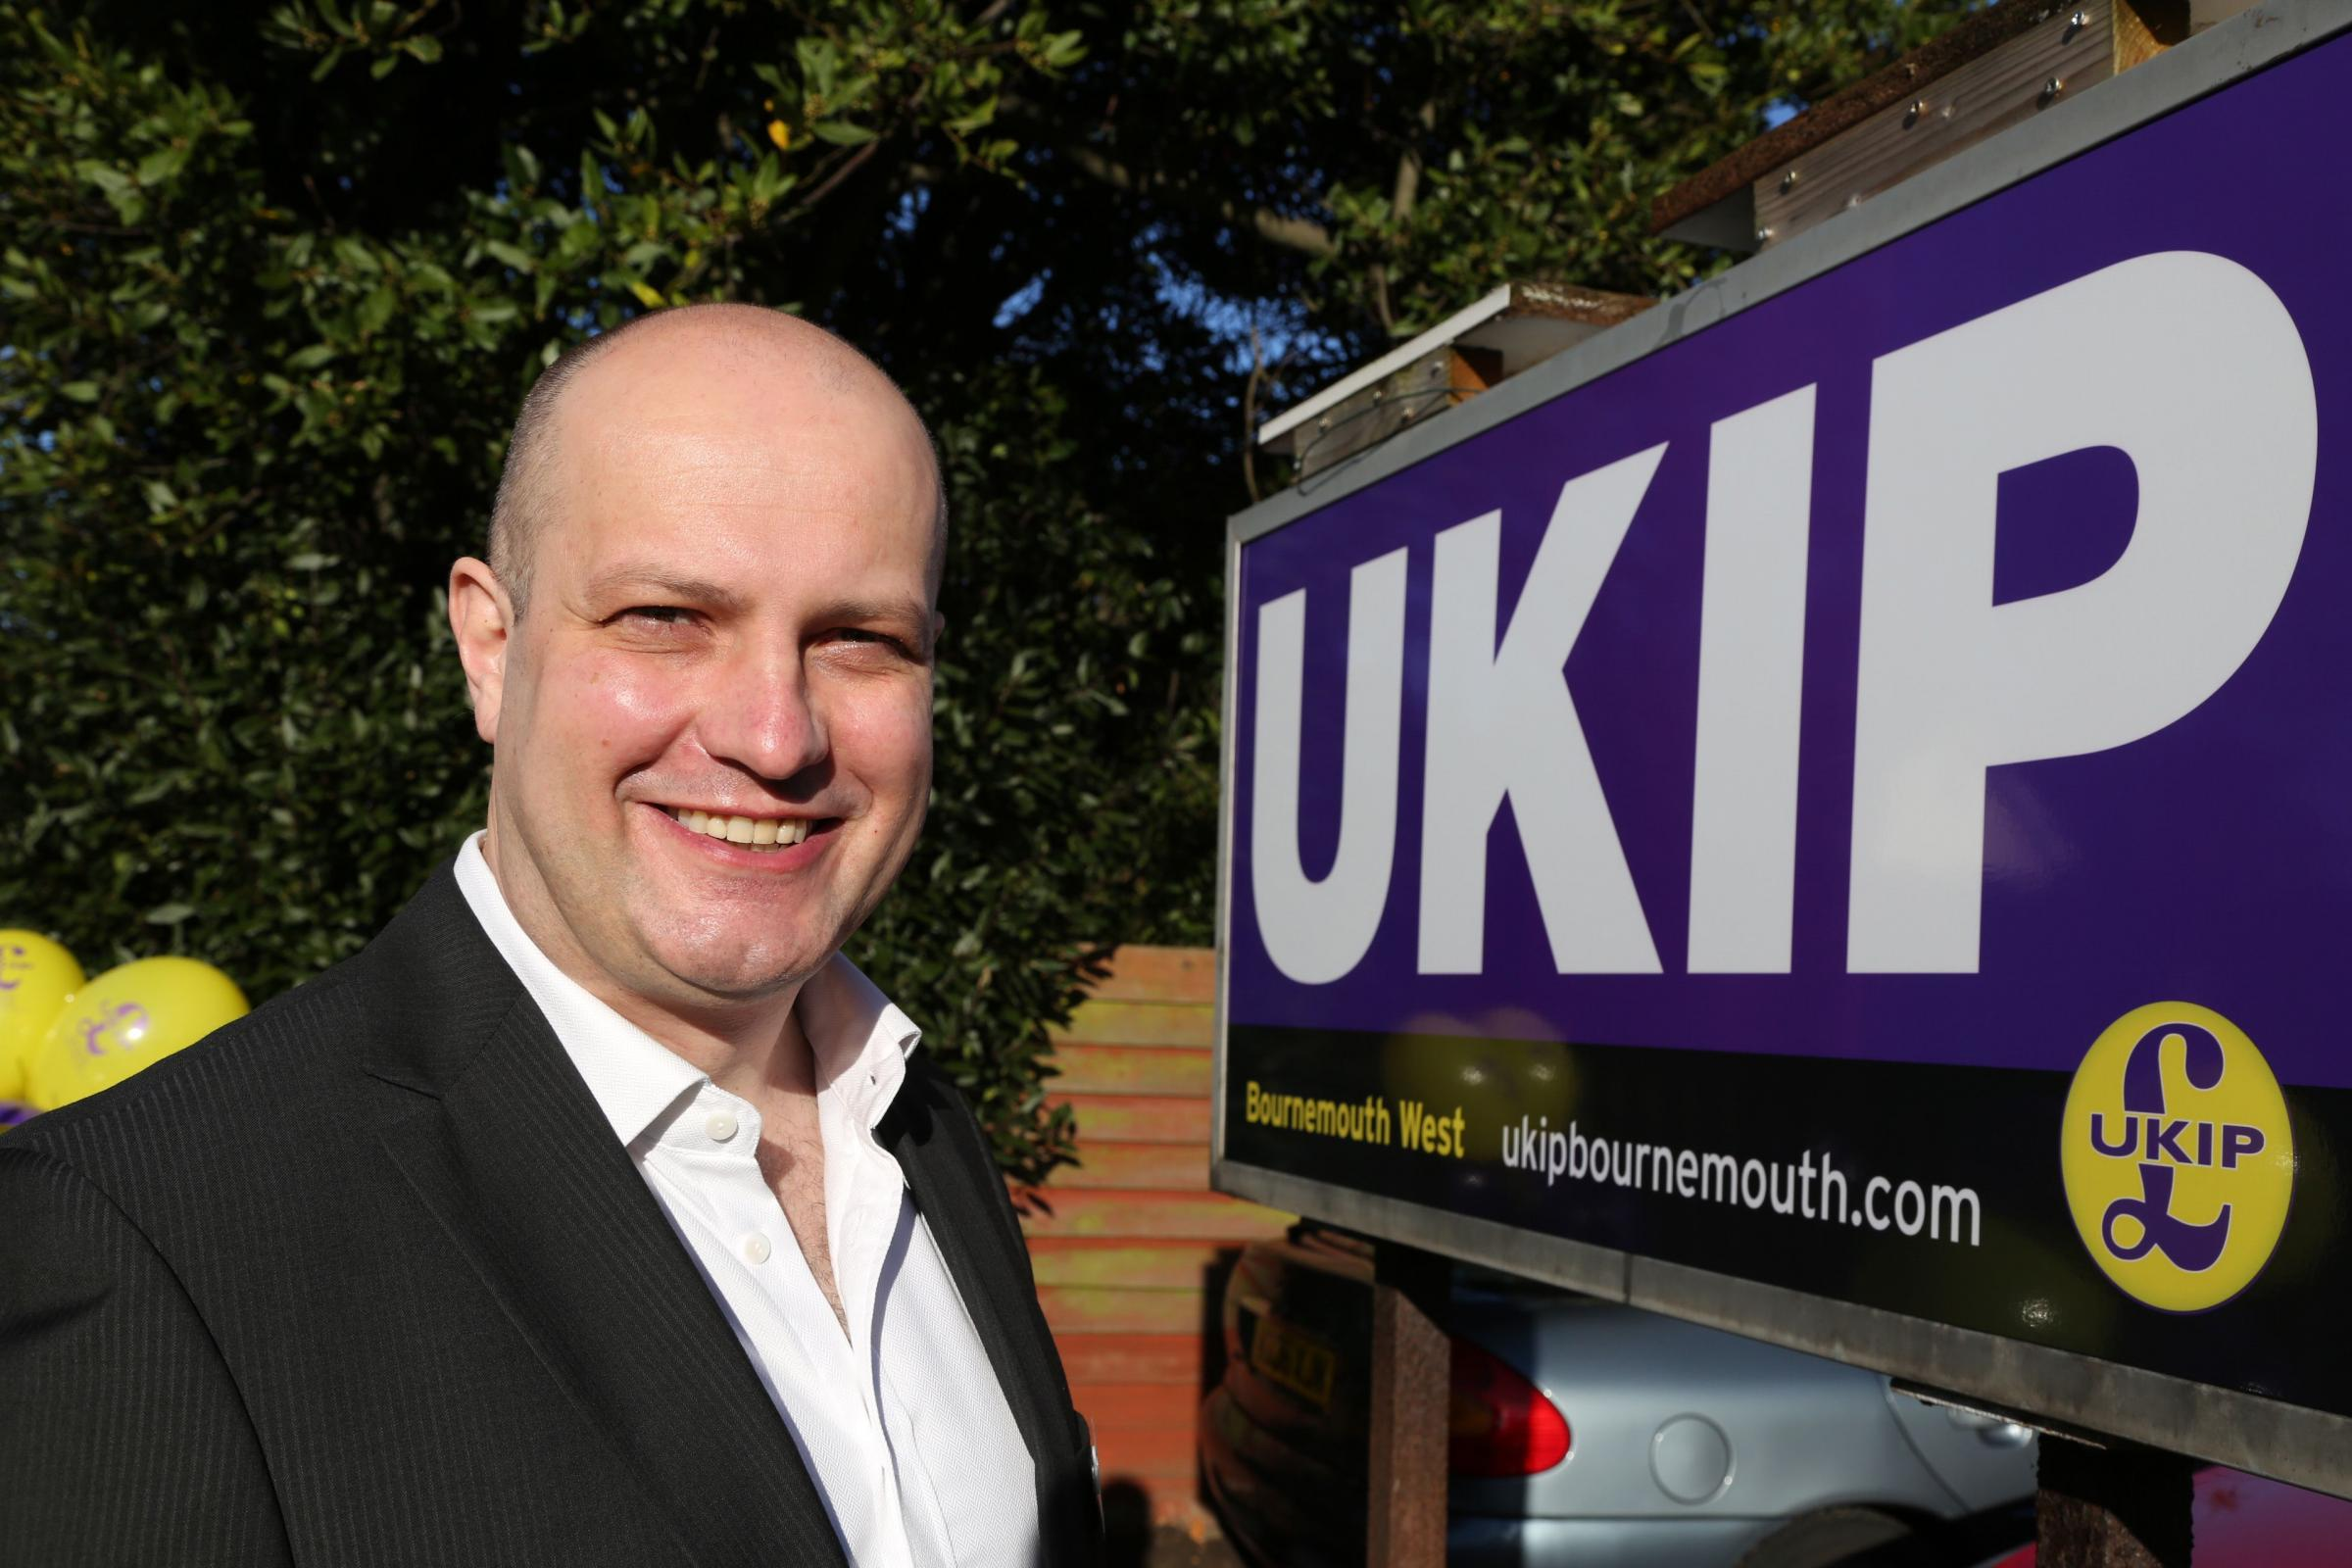 Martin Houlden, vice chairman of UKIP, Bournemouth West